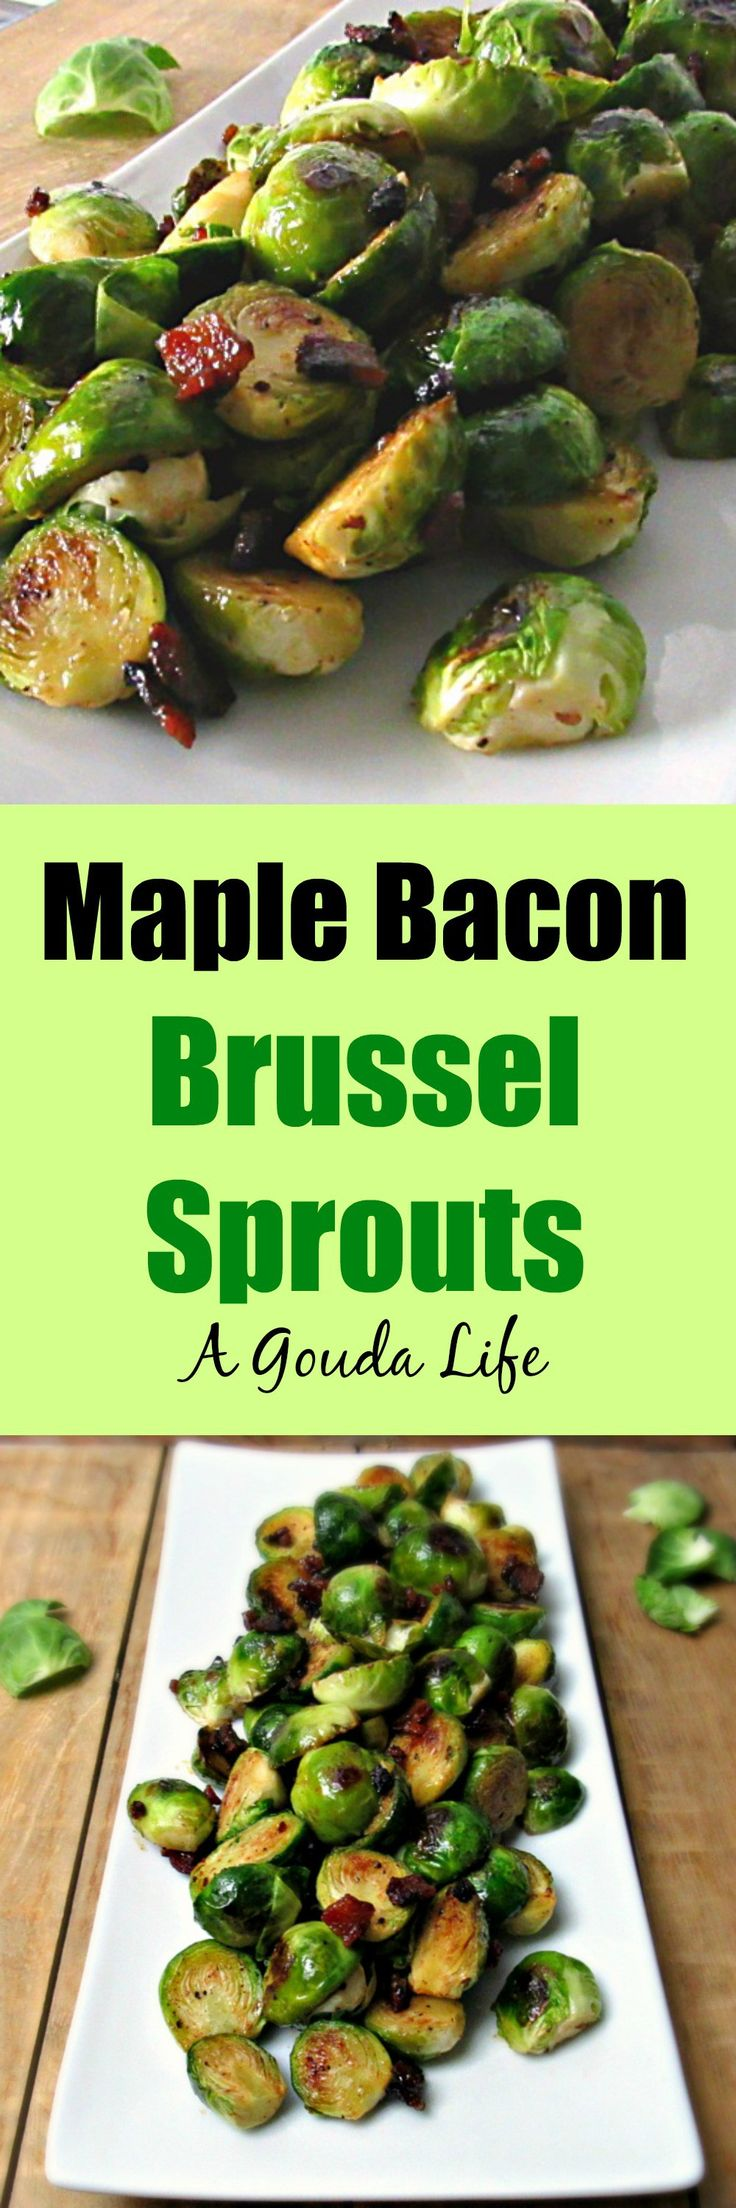 Maple Bacon Brussel Sprouts, oven roasted until tender with crispy, golden edges then tossed in a maple syrup ~ applewood smoked bacon glaze.